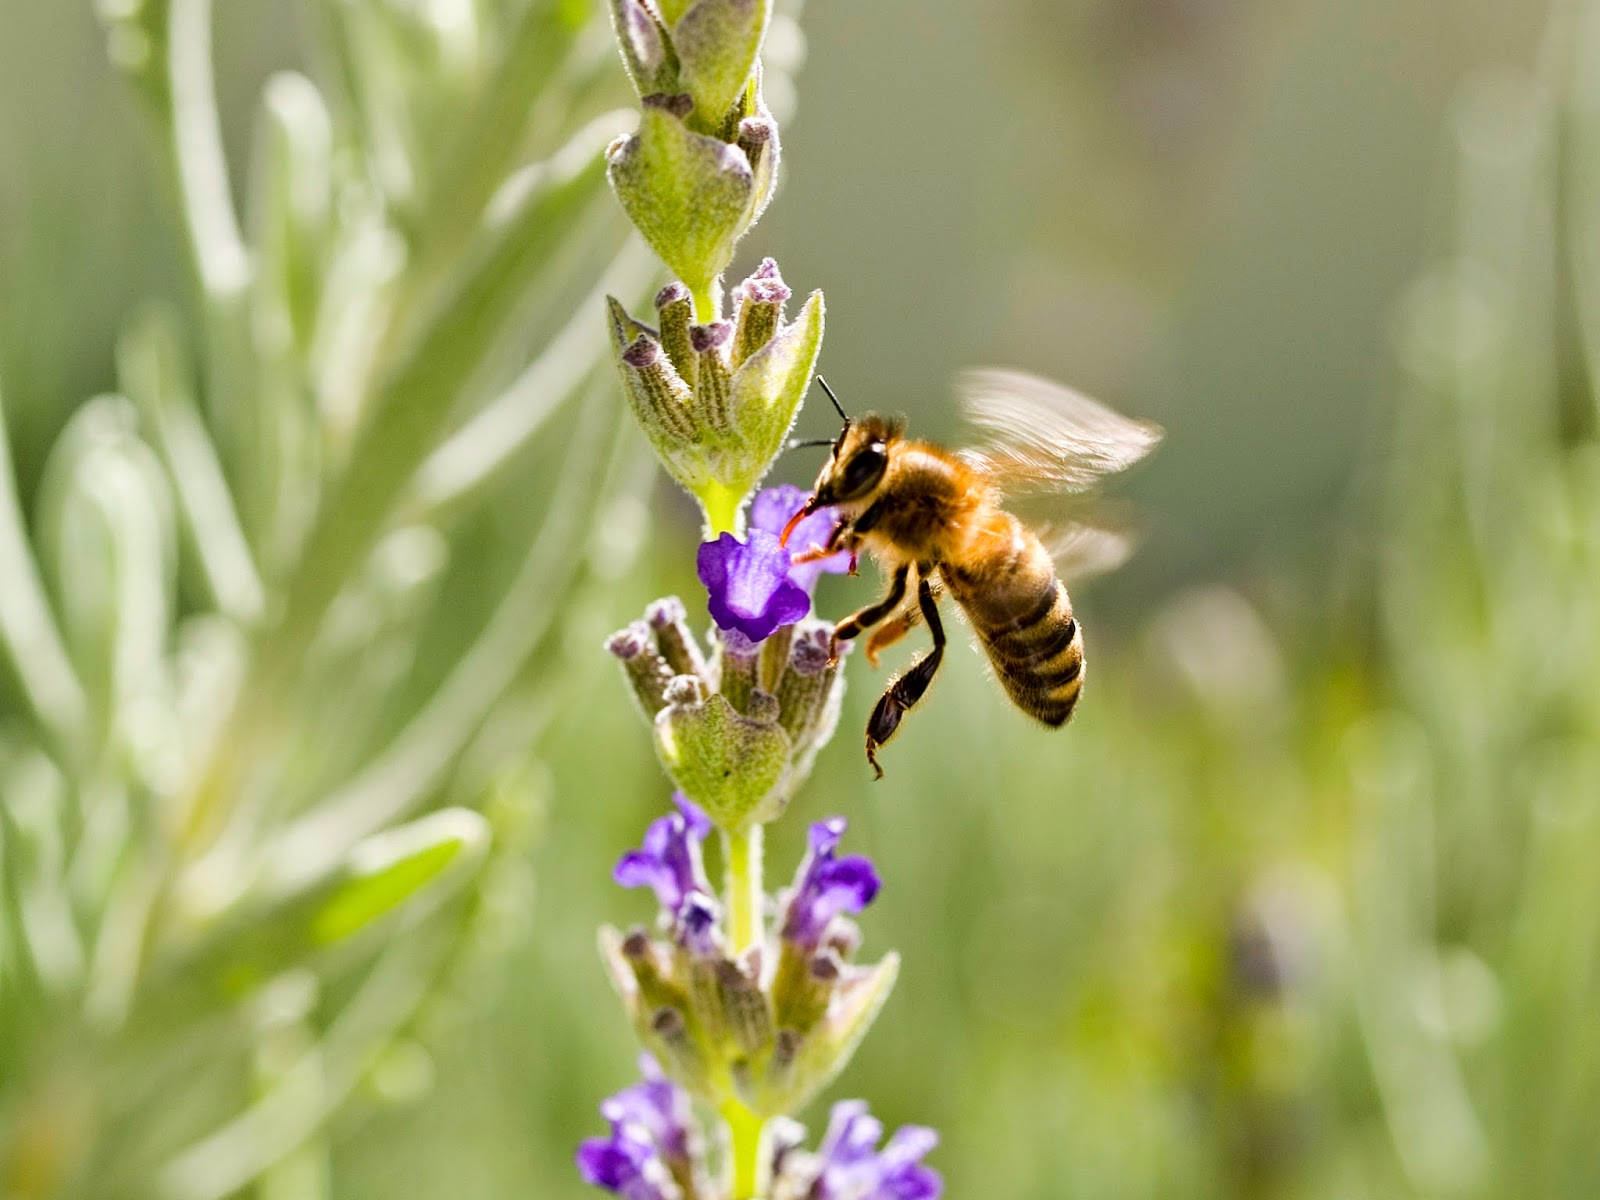 Change the world by protecting honey bees.